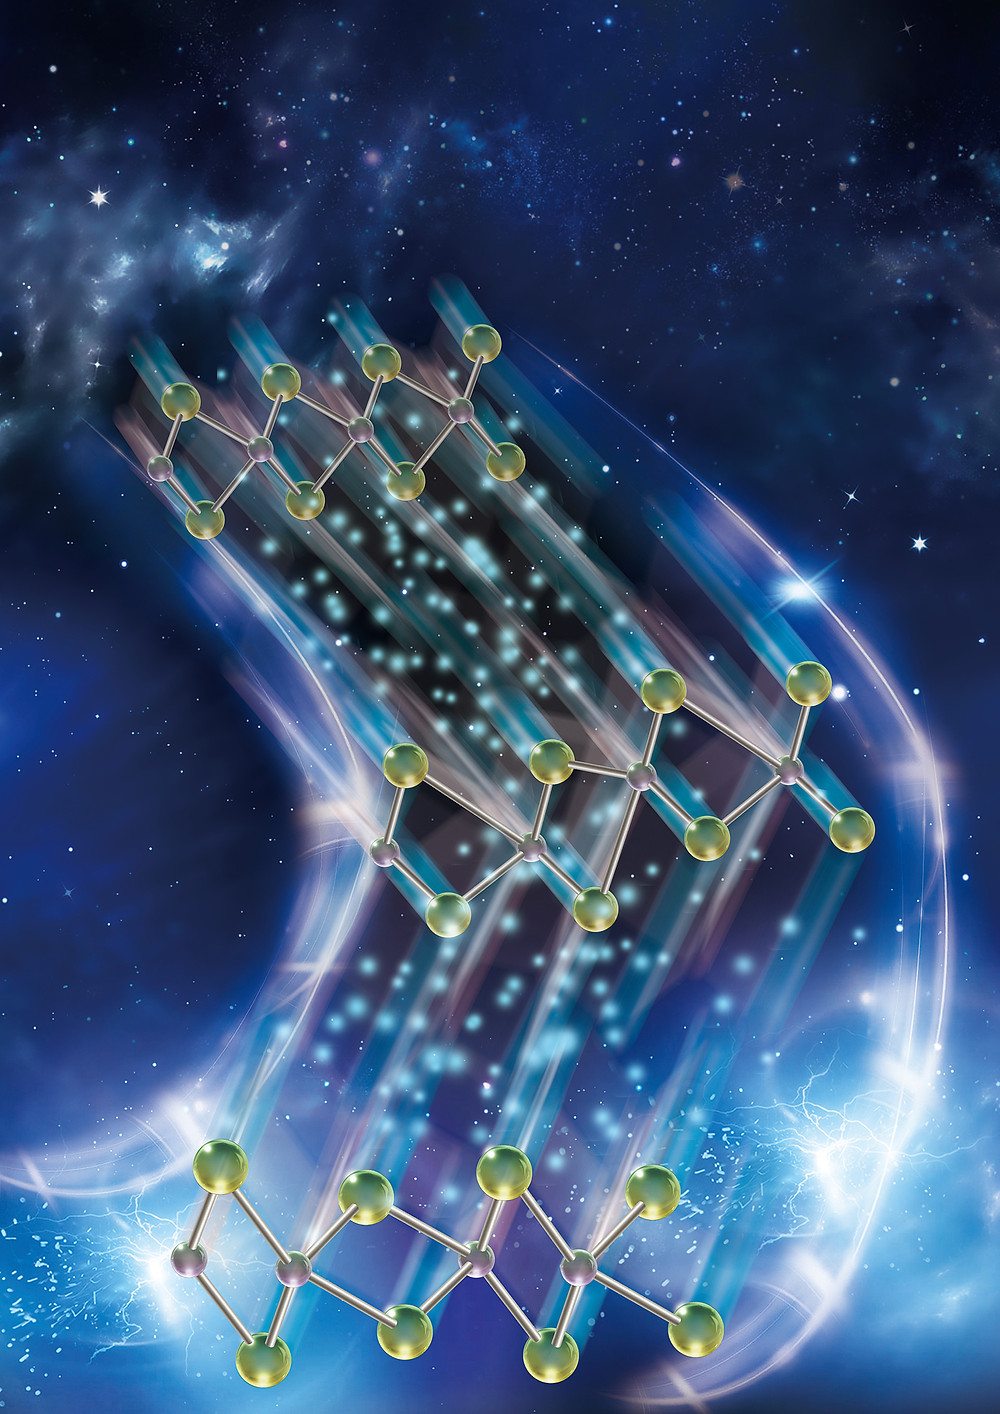 Researchers have discovered a new functionality in a two-dimensional material that allows data to be stored and retrieved much faster on a computer chip, saving battery life. @ Purdue University illustration